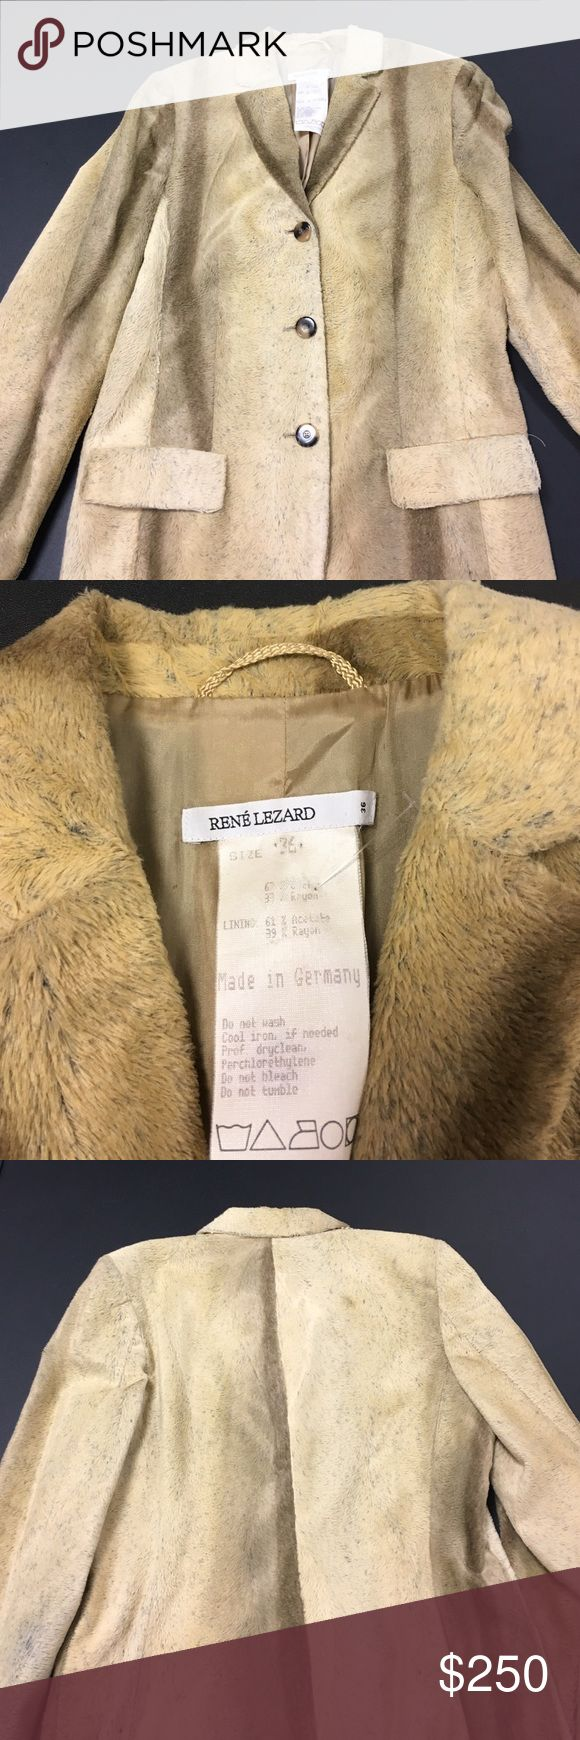 RENE LEZARD FAUX FUR COAT Made in GERMANY. ONE OF A KIND!!! RENE LEZARD FAUX FUR.  CIRCA 1980. VITAGE PIECE. RARE FIND. GOOD CONDITION. Similar ones have sold for 295 EUROS. RENE LEZARD Jackets & Coats